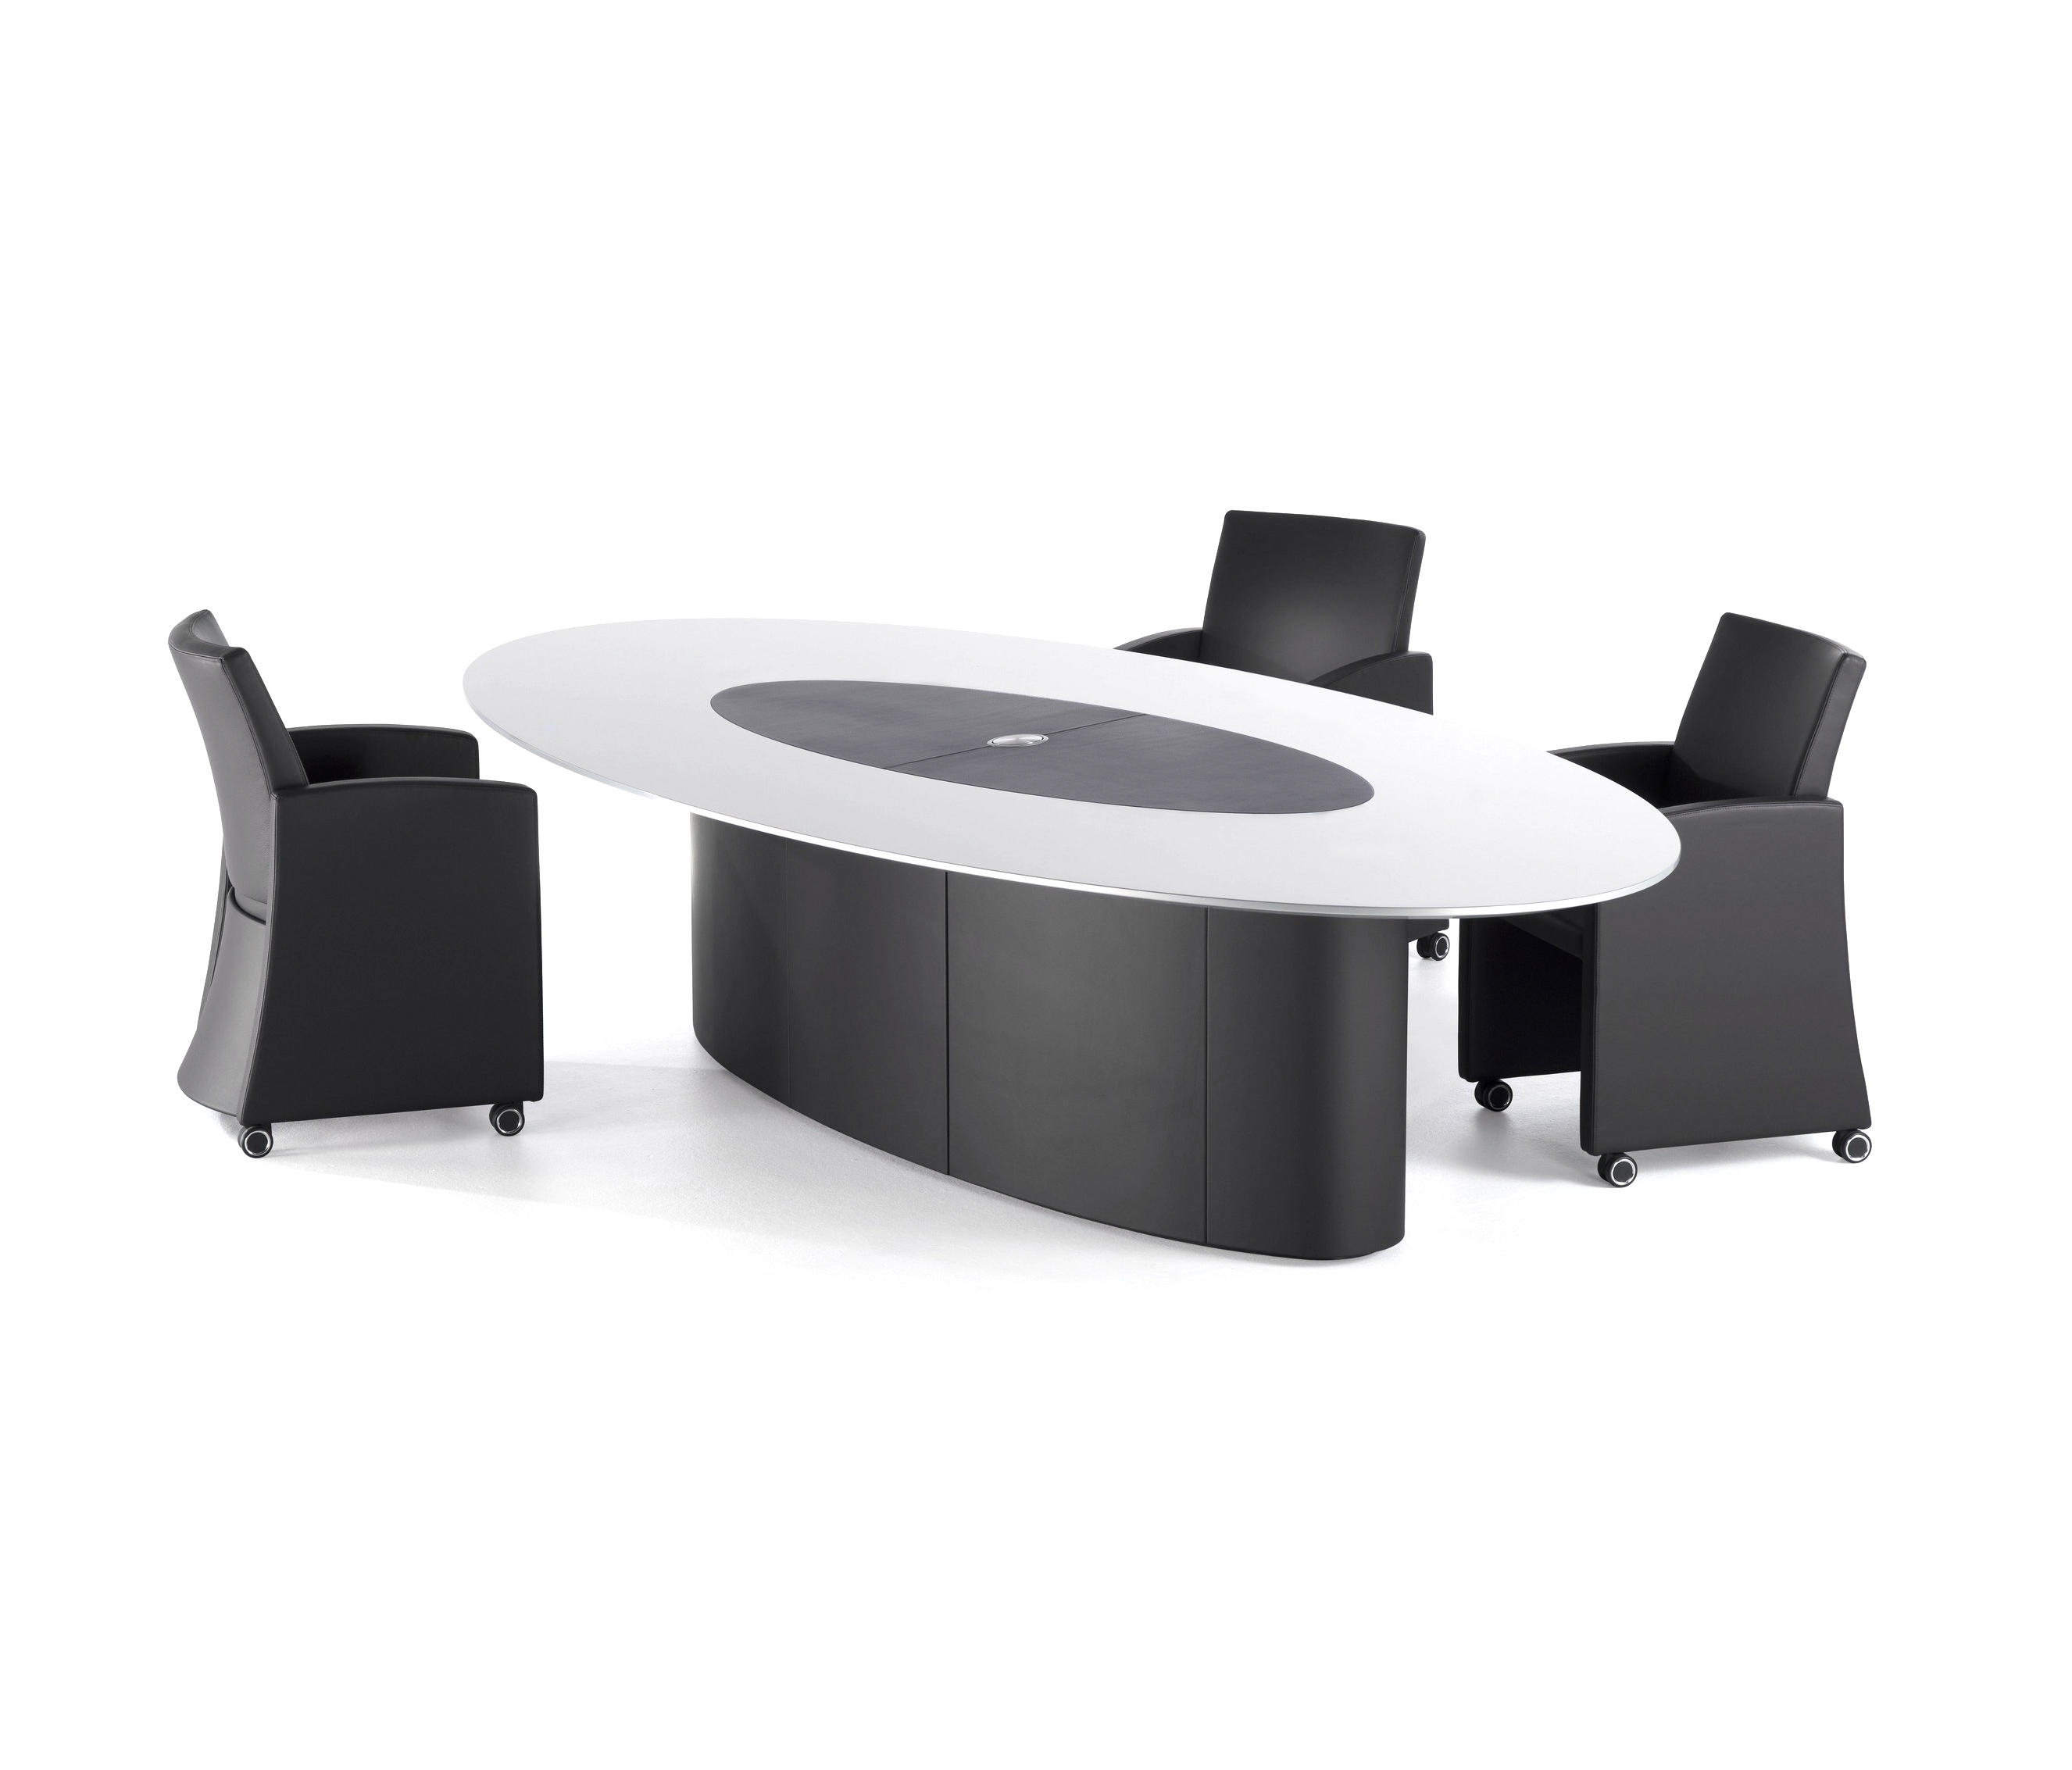 SITAG CUSTOMIZED OVAL CONFERENCE TABLE SPECIAL Contract Tables - White oval conference table